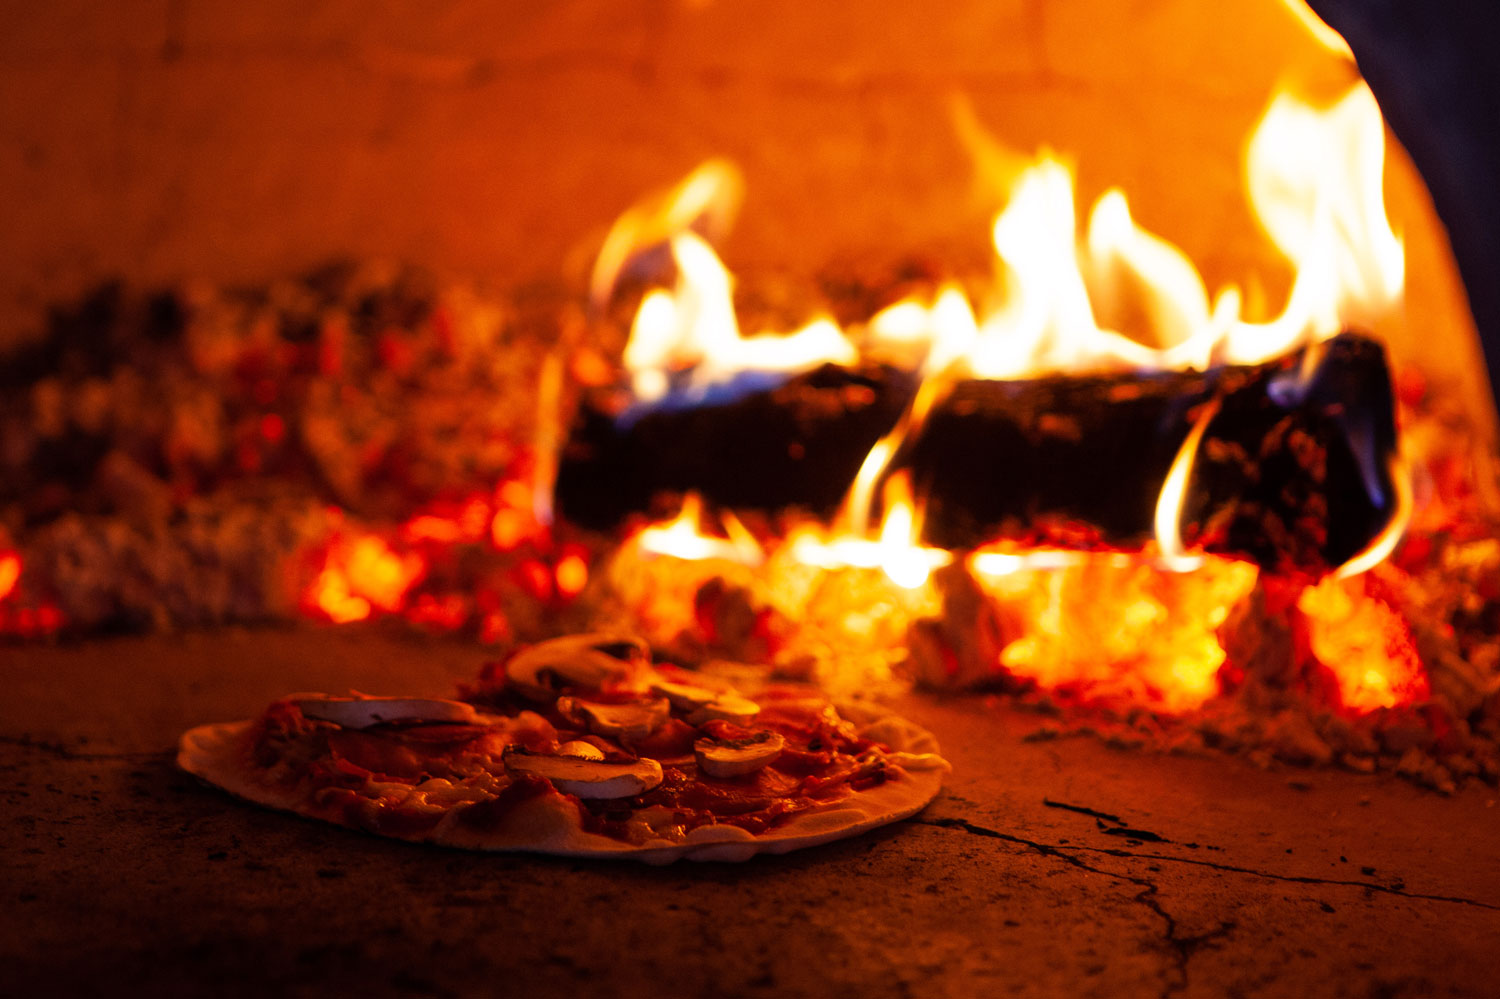 Pizza from Gjendesheim - The outdoor pizza oven will be open from 15:00 until late. If you have a green travel voucher, why not trade it in for a pizza of your choice?